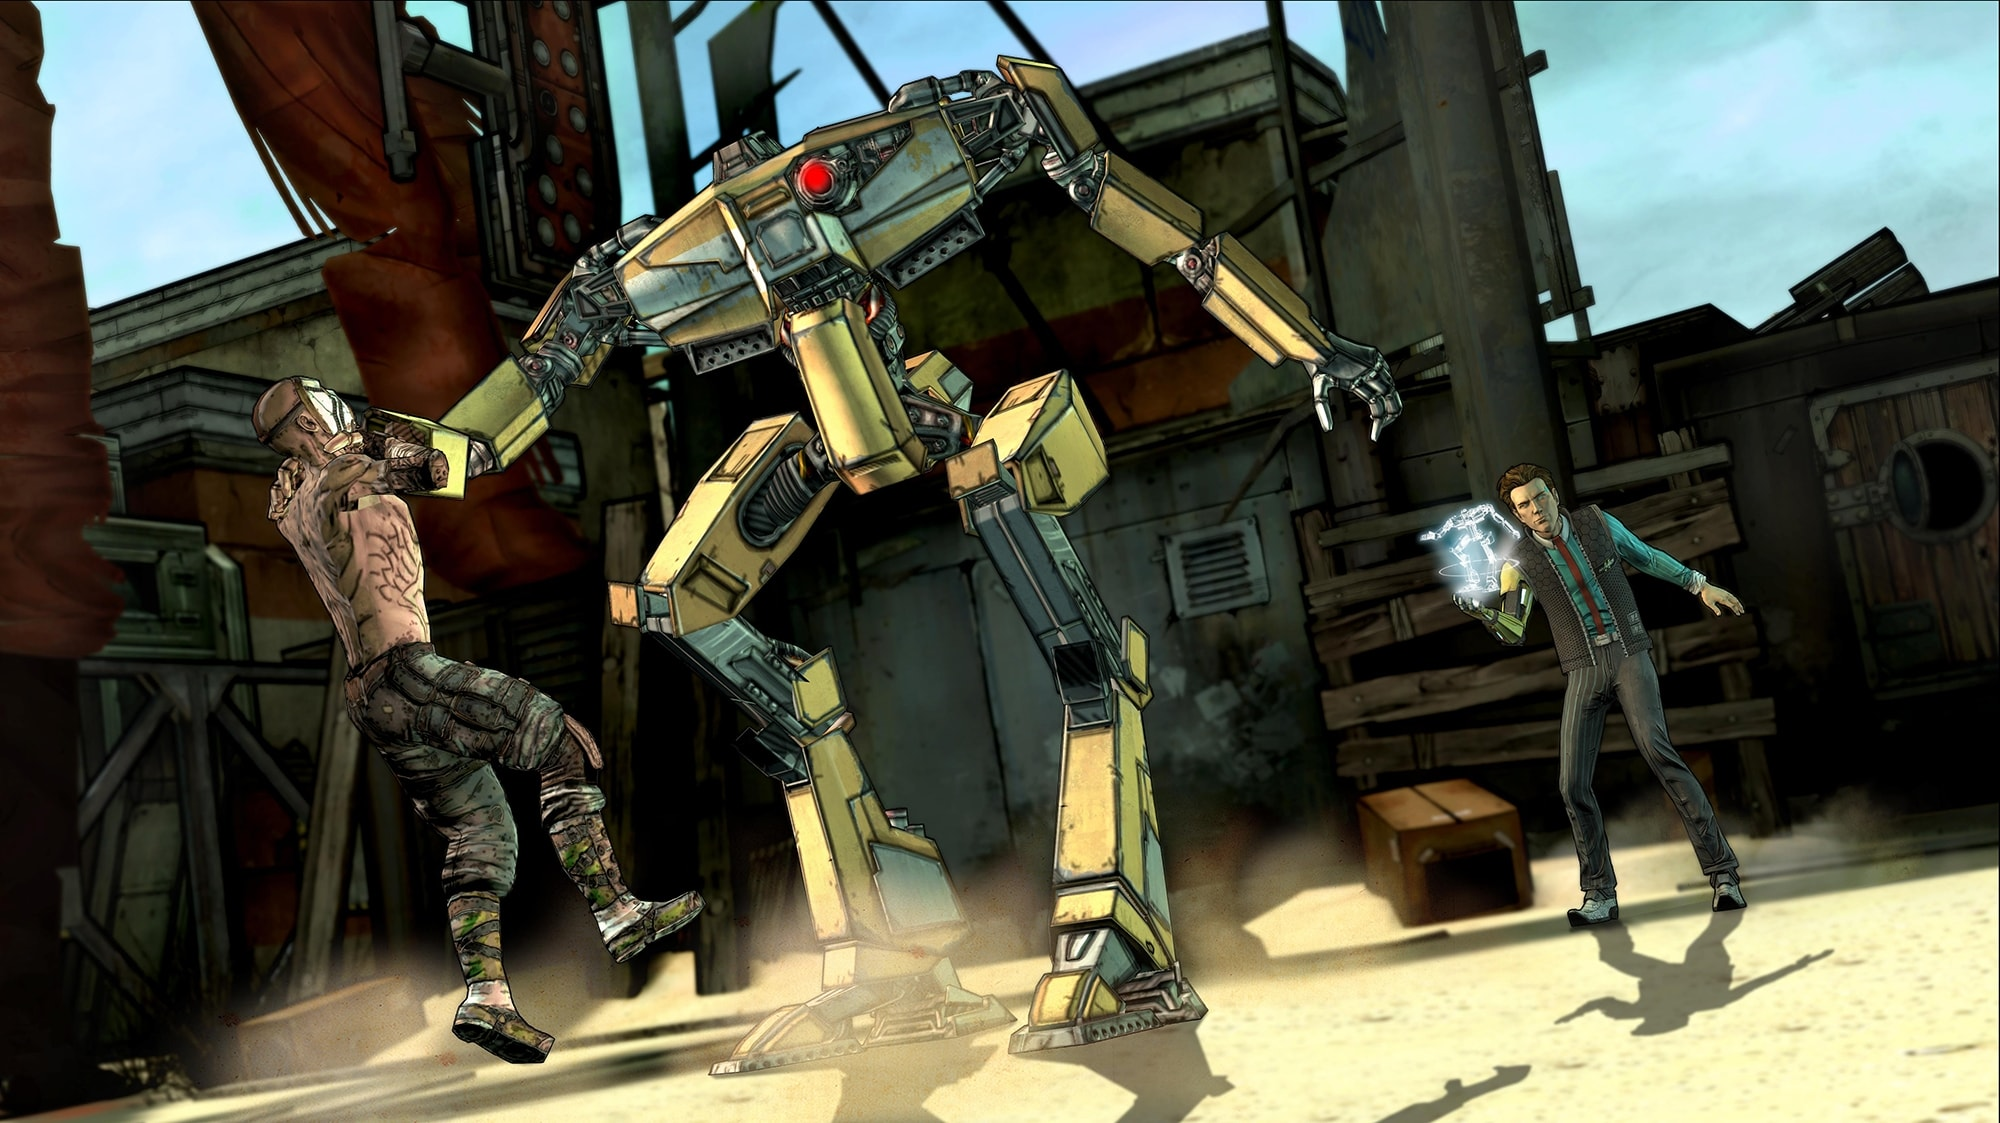 Tales from the Borderlands: Episode 5 - The Vault of the Traveler Free